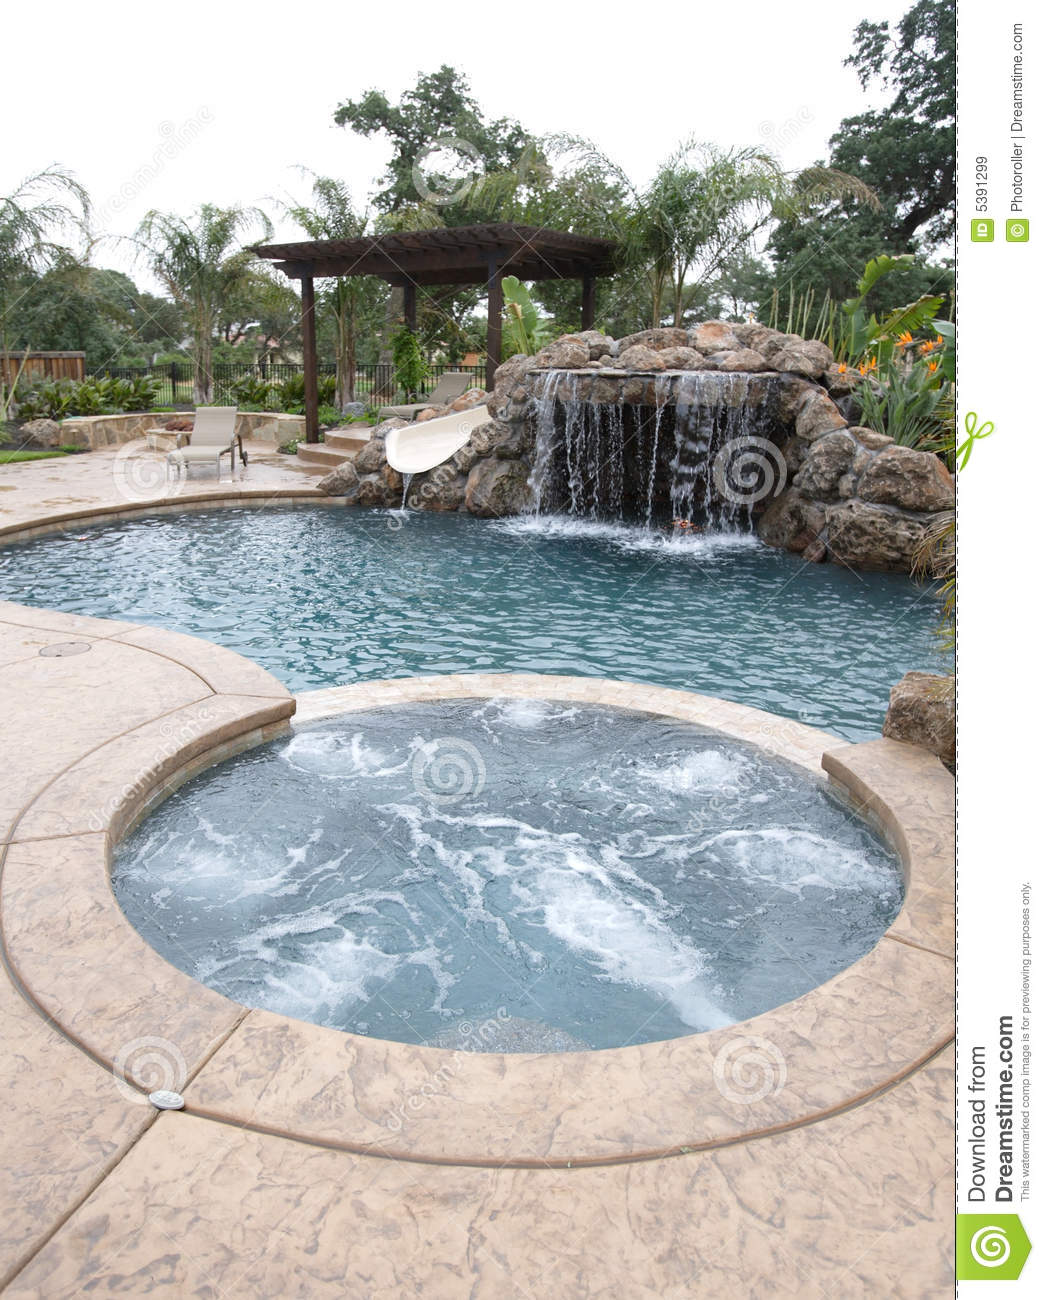 Mansion Luxury Pools With Waterfalls: A Pool With A Waterfall In A Luxury Backyard Royalty Free